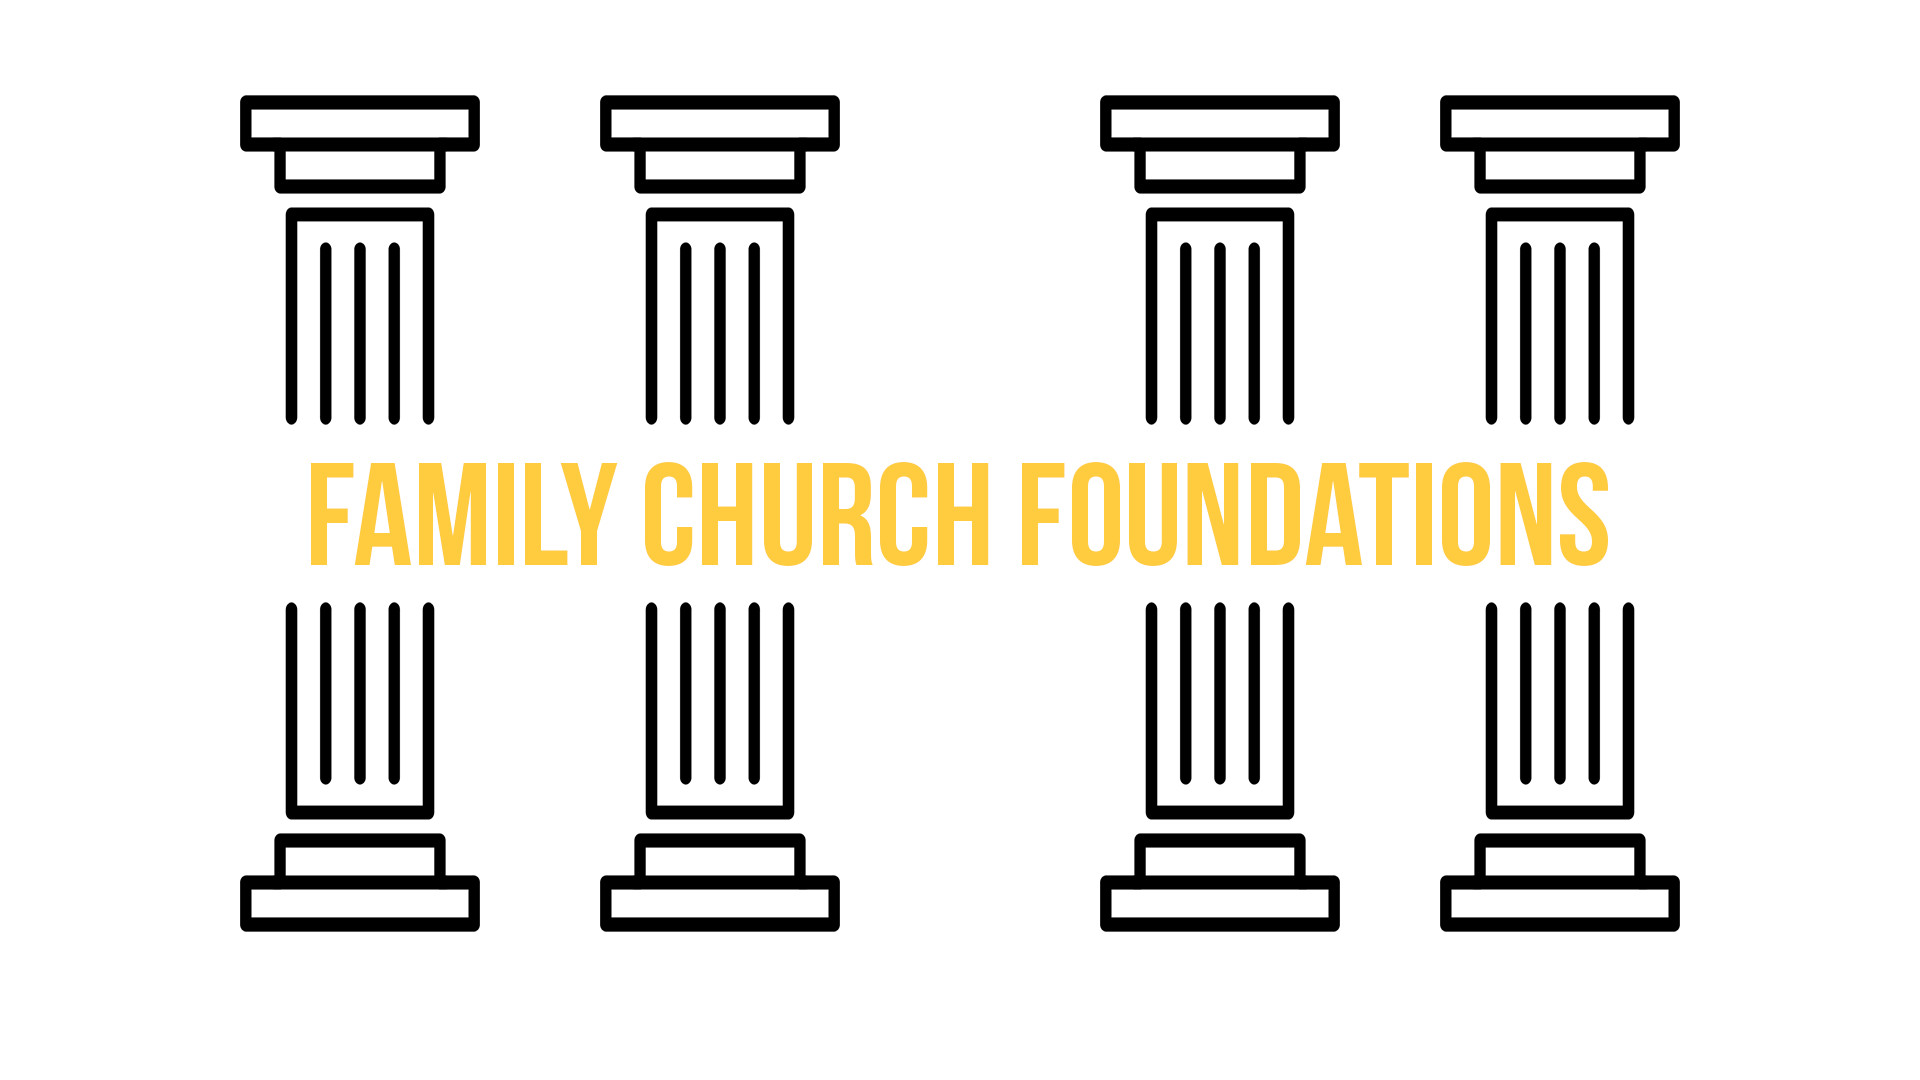 Looking more closely at Family Church structure and philosophy.